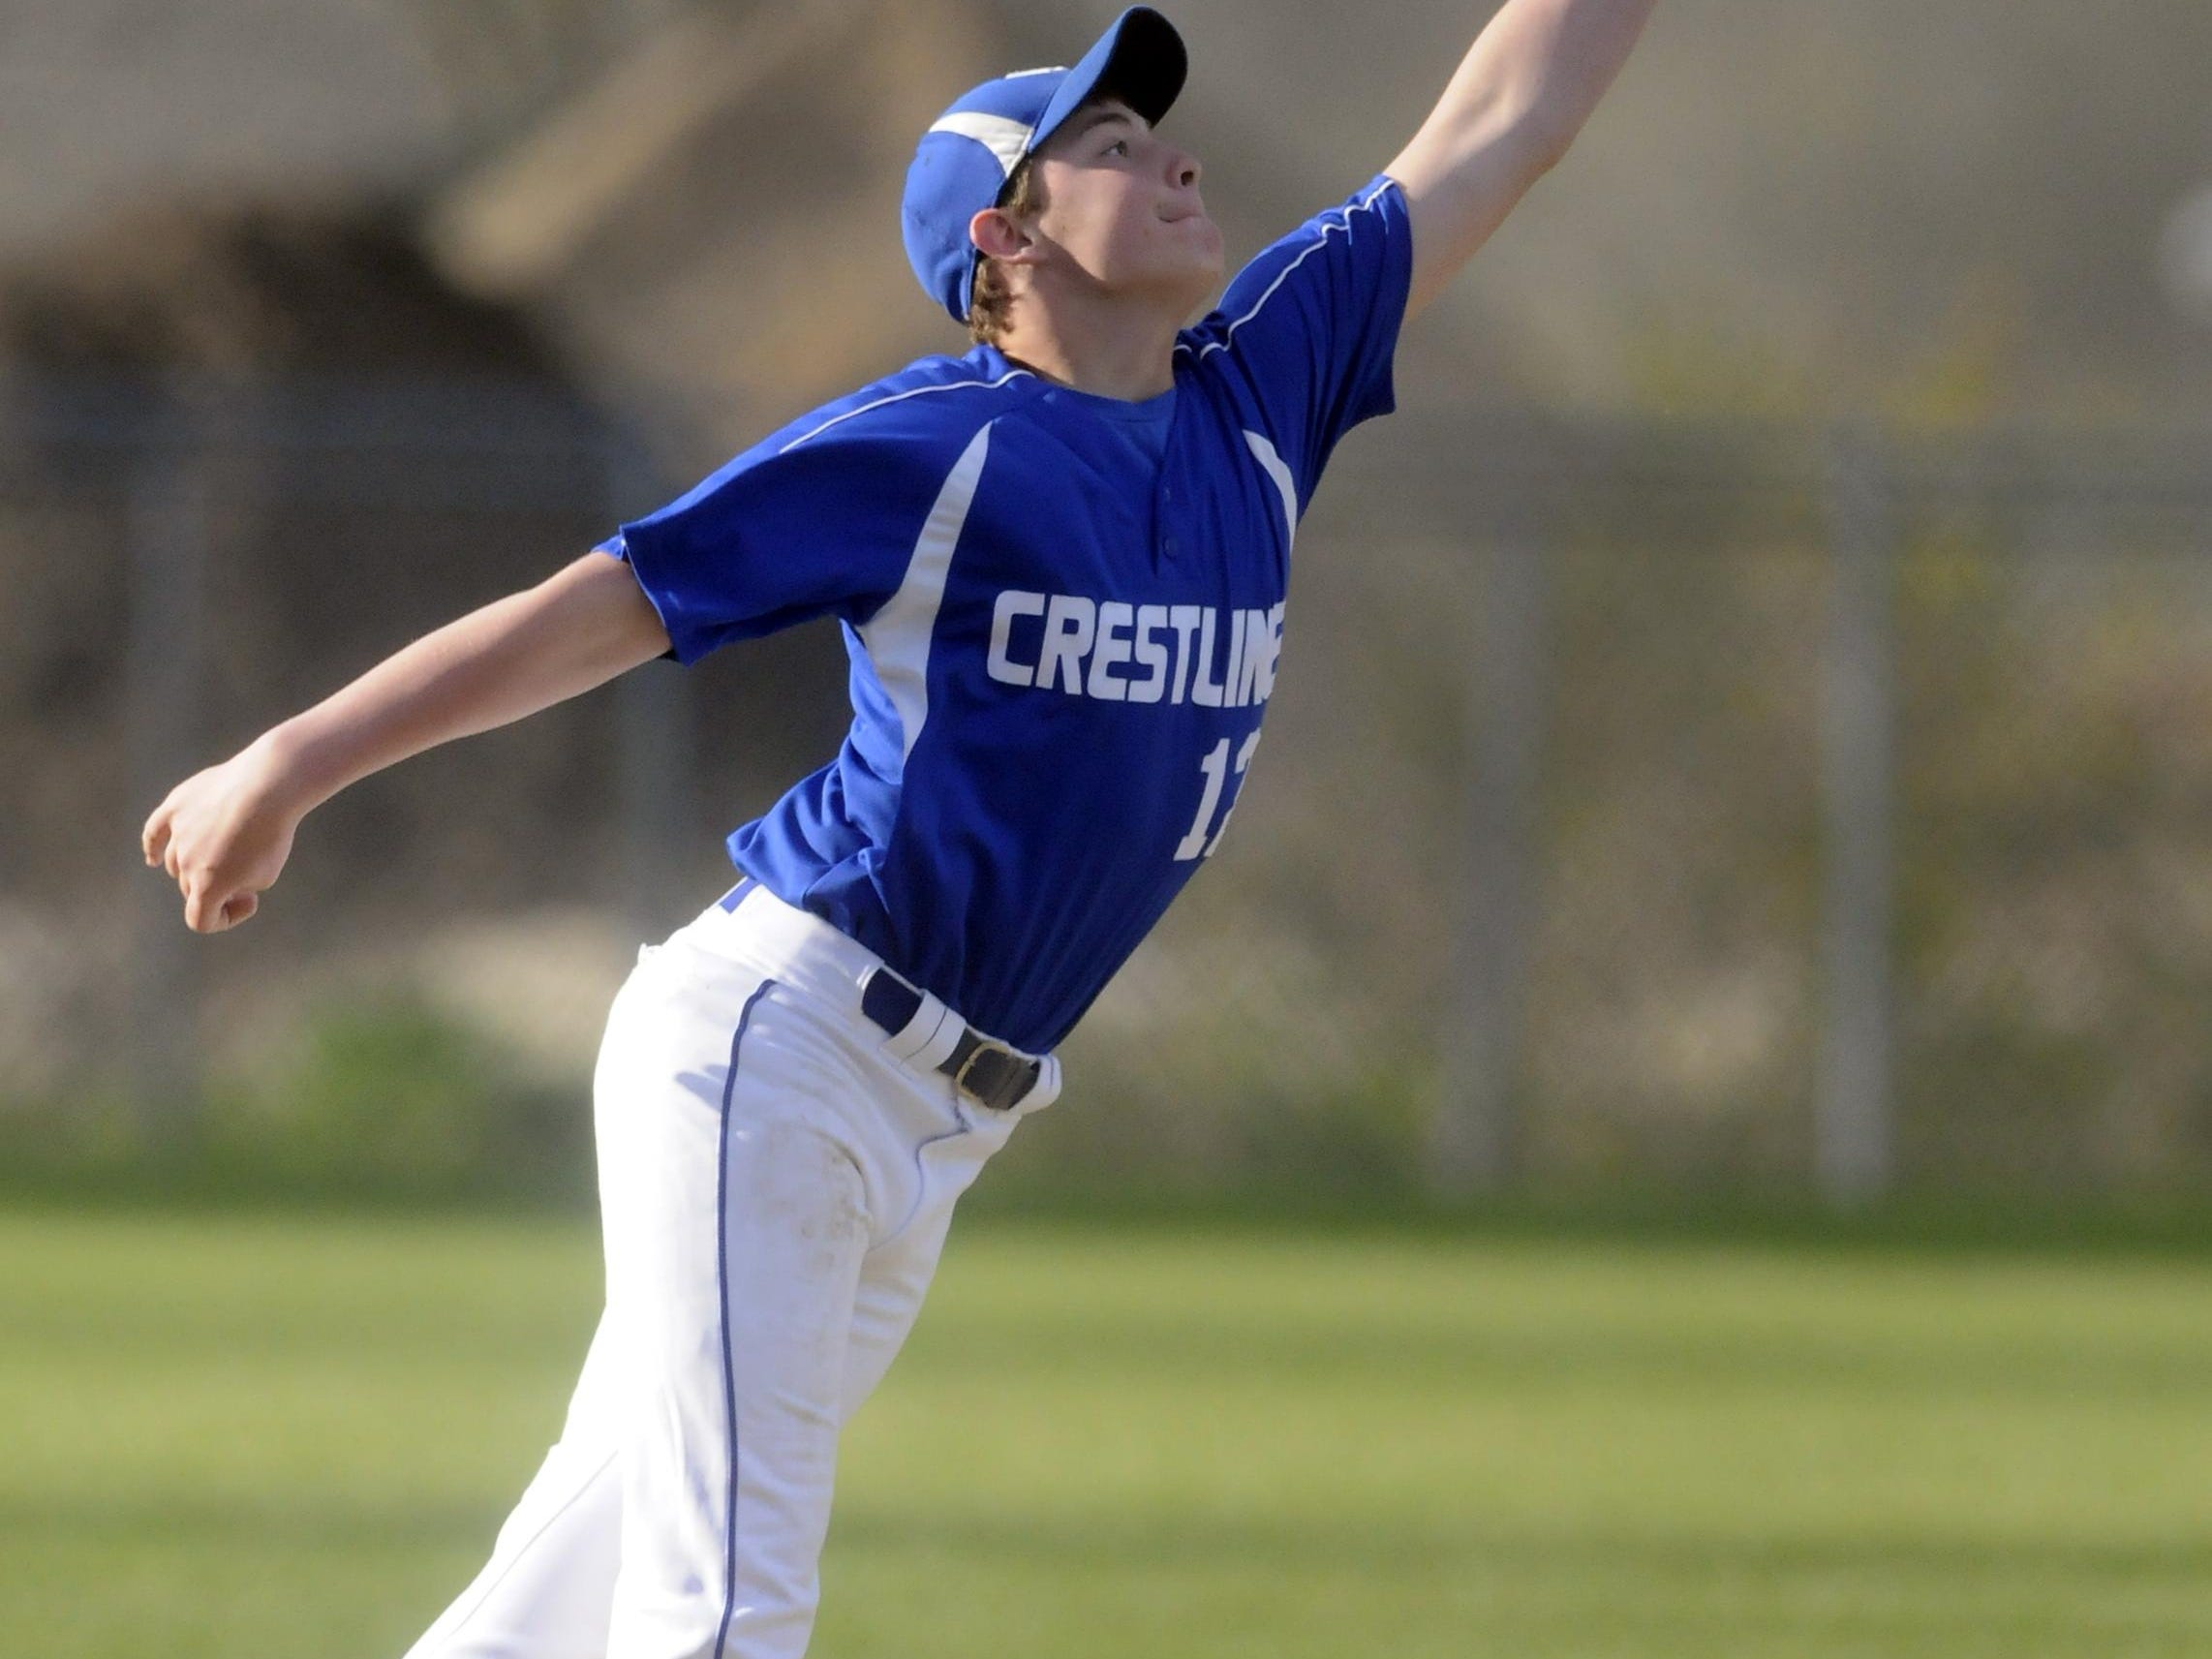 Crestline's Nathan Coffman is the 2015 All-Crawford County Player of the Year.